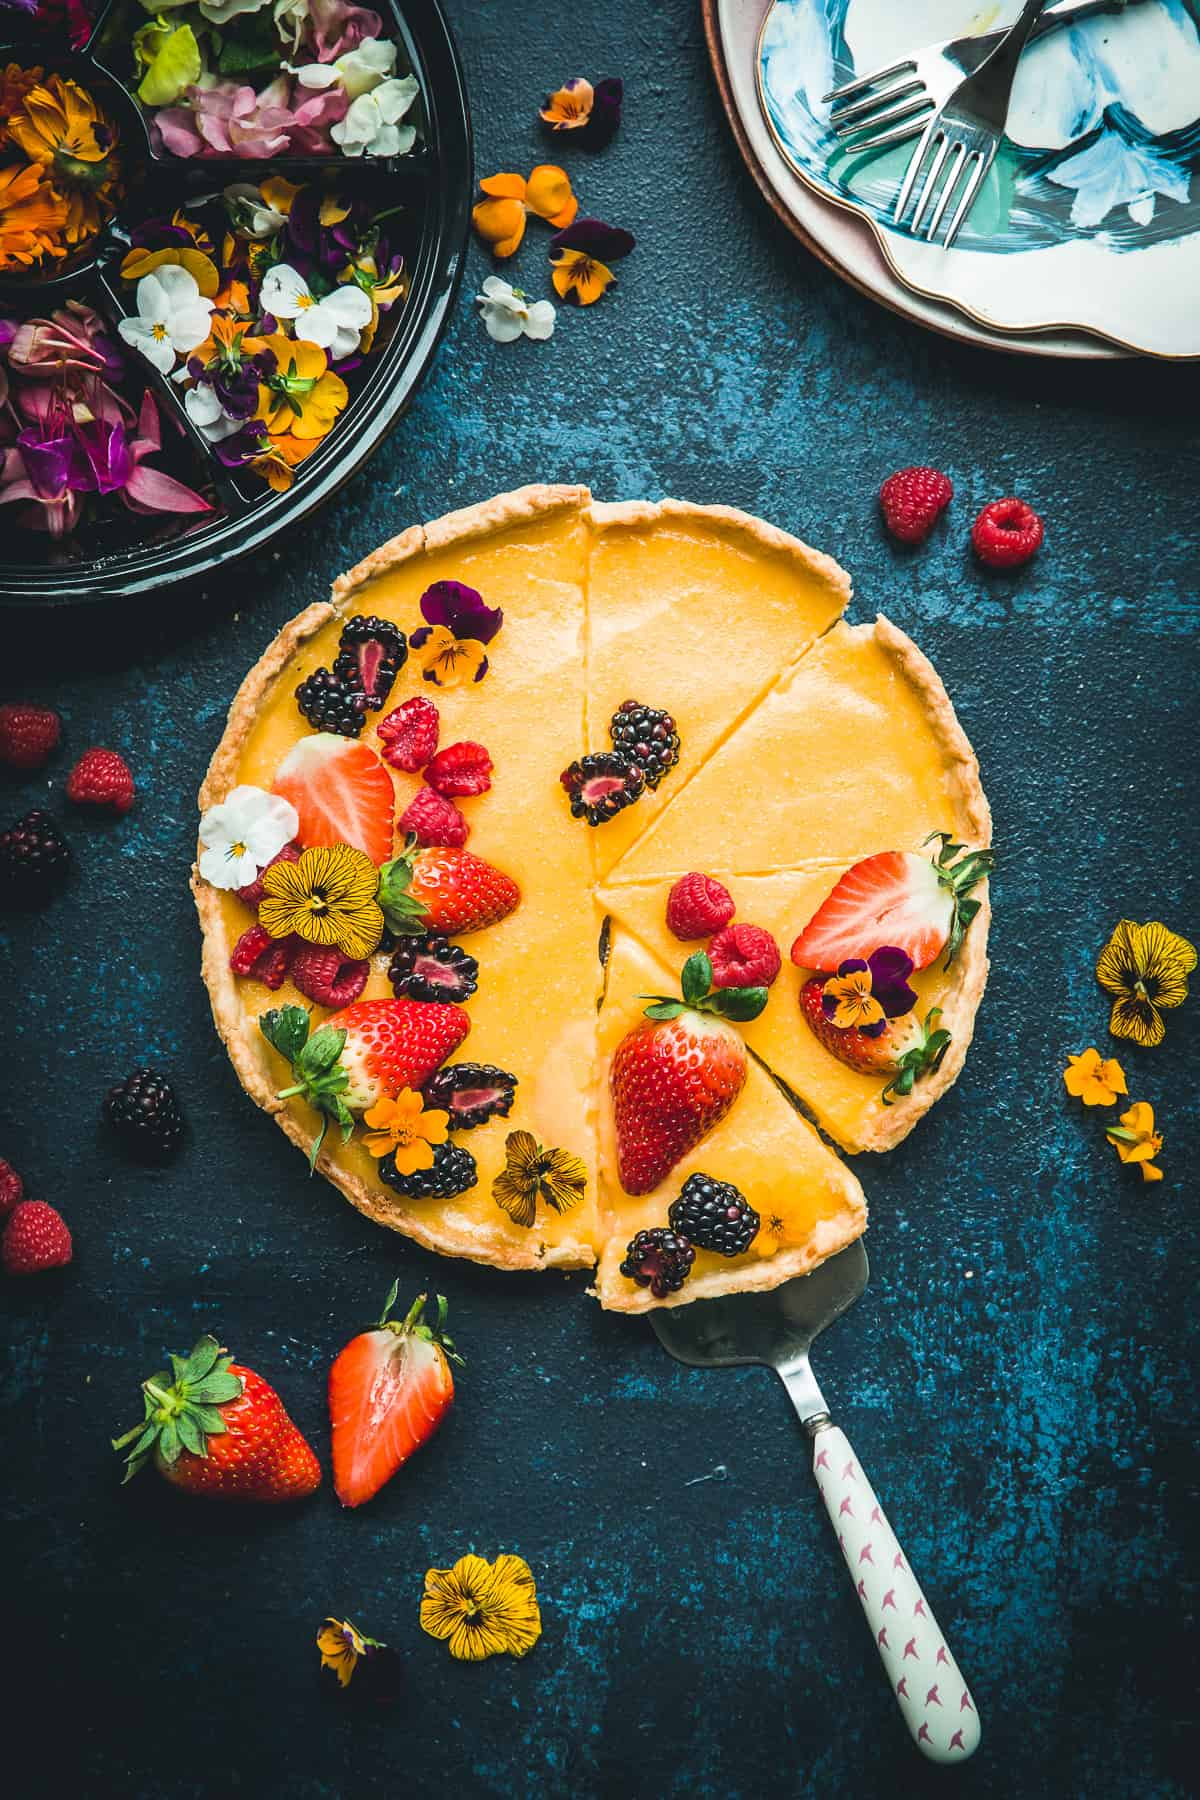 A lemon pie covered with fresh berries and edible flowers.